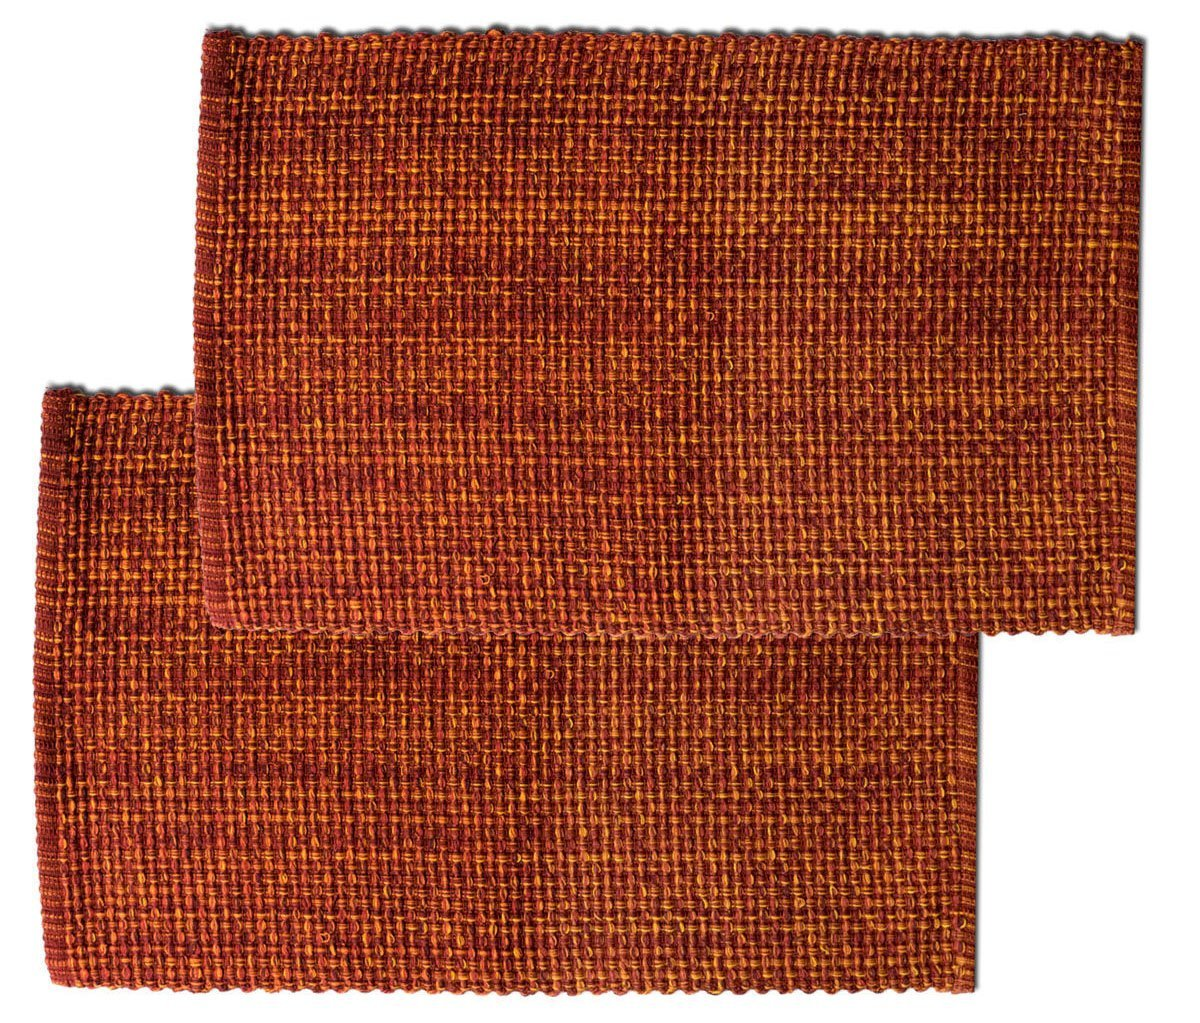 "Unique & Custom {13 x 19 Inch} Set Pack of 2 Rectangle ""Non-Slip Grip Texture"" Large Table Placemats Made of Washable Flexible 100% Cotton w/Woven Rust Tone Country Boho Design [Brown Color]"